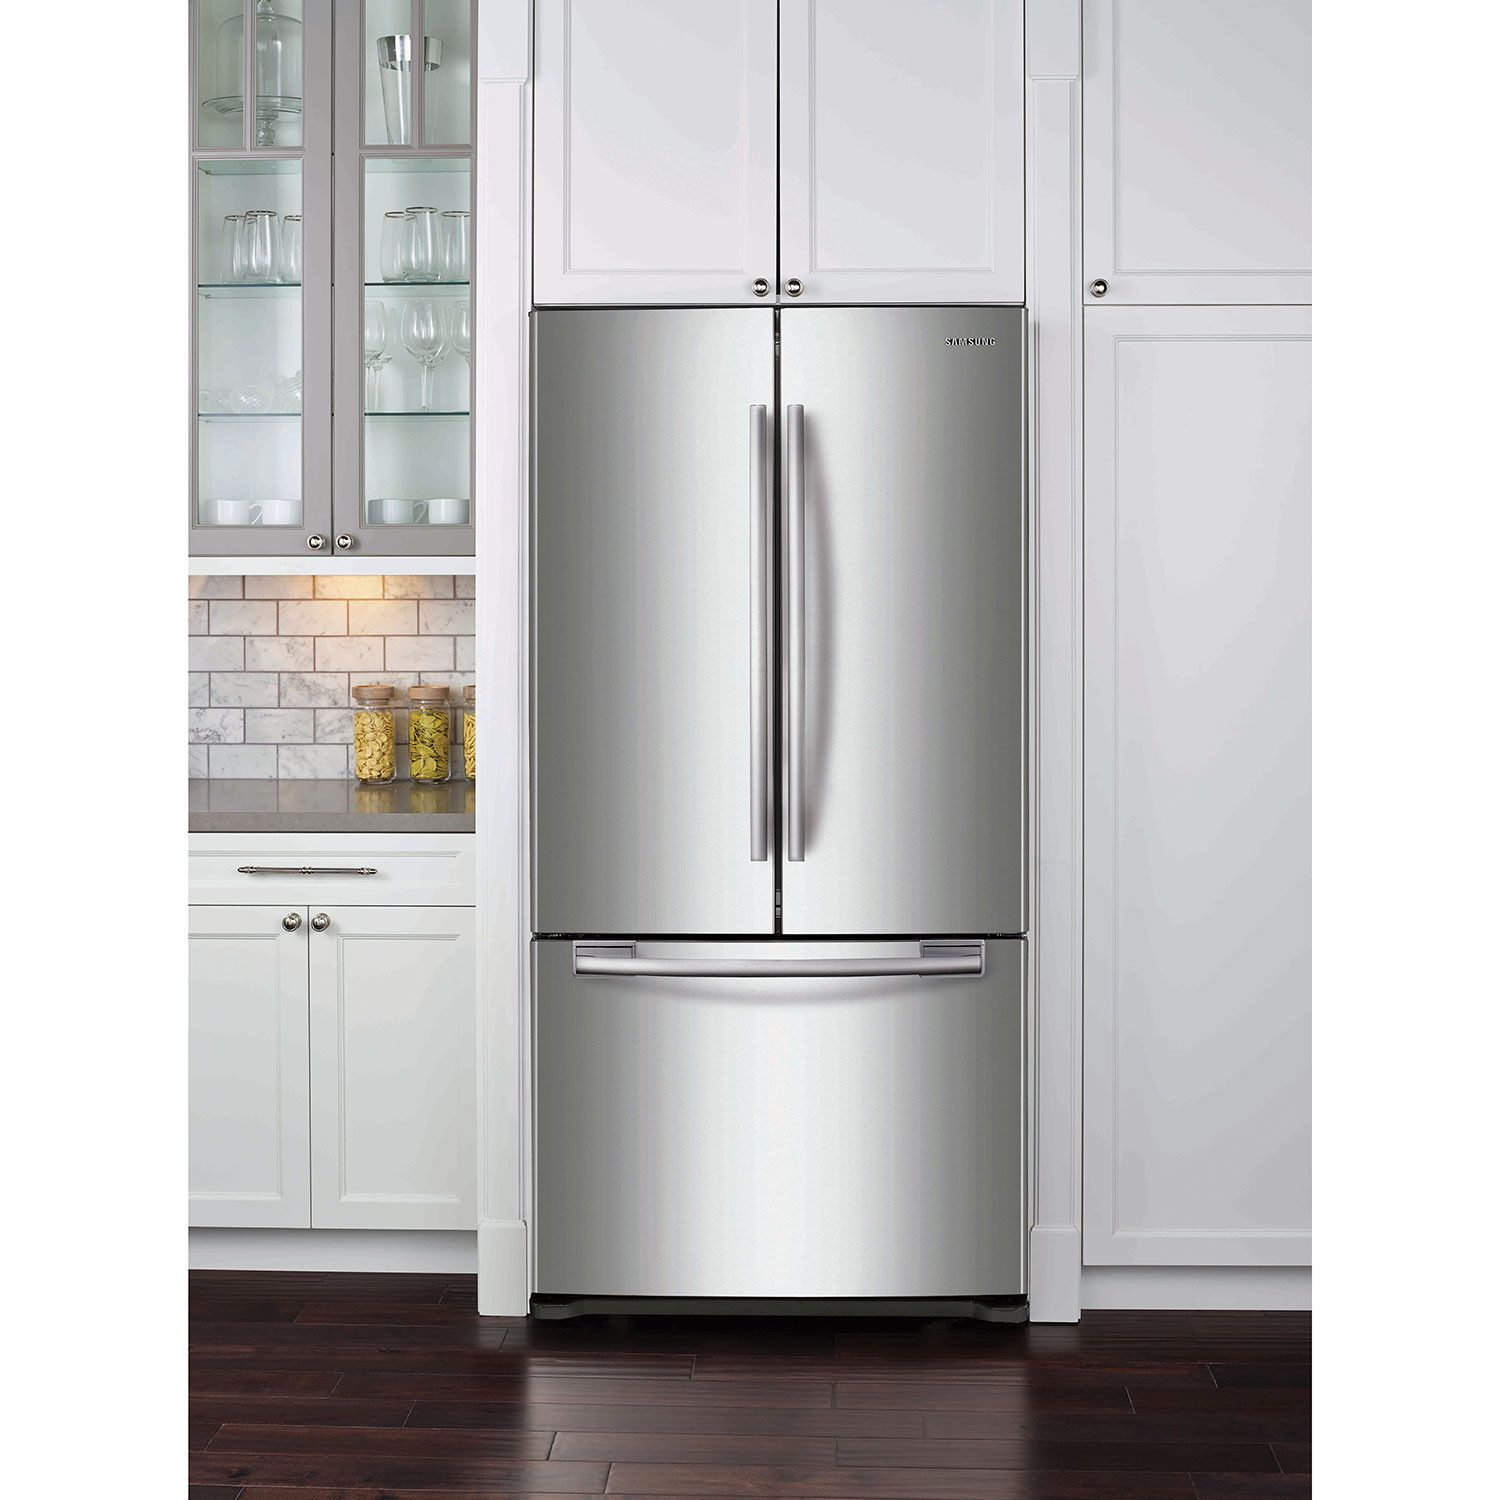 55 30 Inch Cabinet Depth Refrigerator Kitchen Nook Lighting Ideas Check More At Counter Depth French Door Refrigerator French Door Refrigerator French Doors